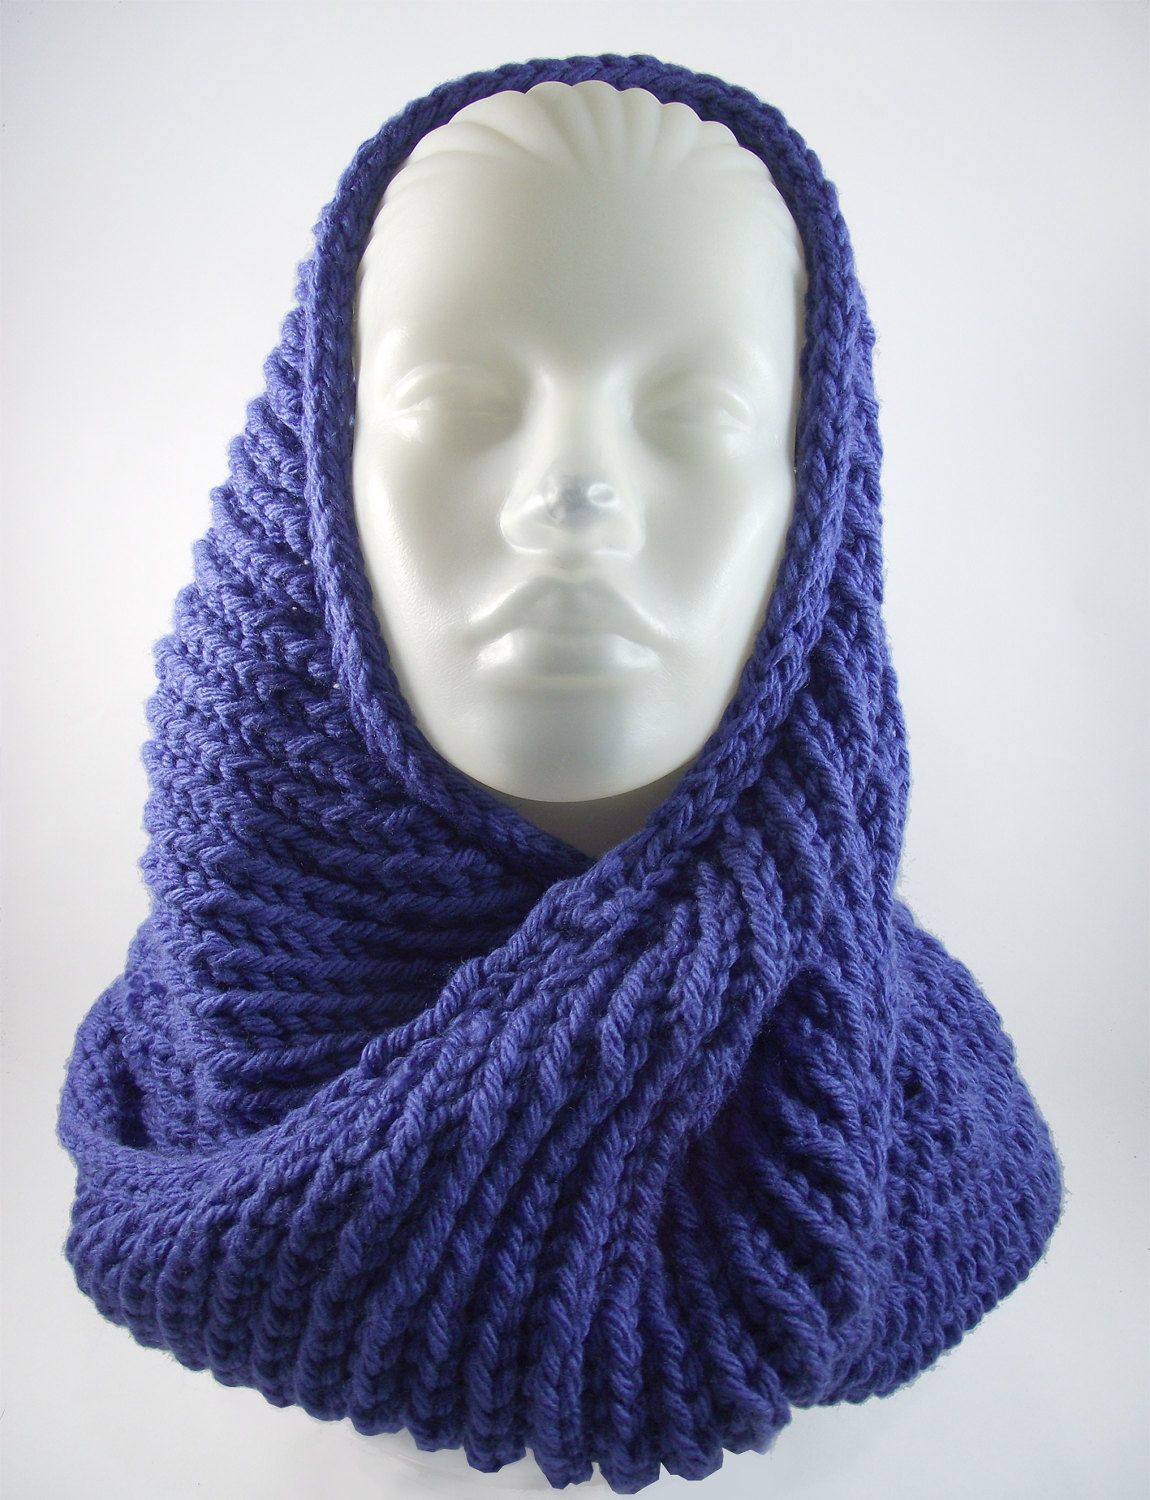 Seamless Scarf- Infinity Scarf-Handmade-Christmas-Gift-Knitted Scarf-Dark Blue Scarf-Winter Accessories-Winter Shawl-Present- by duduhandmade on Etsy